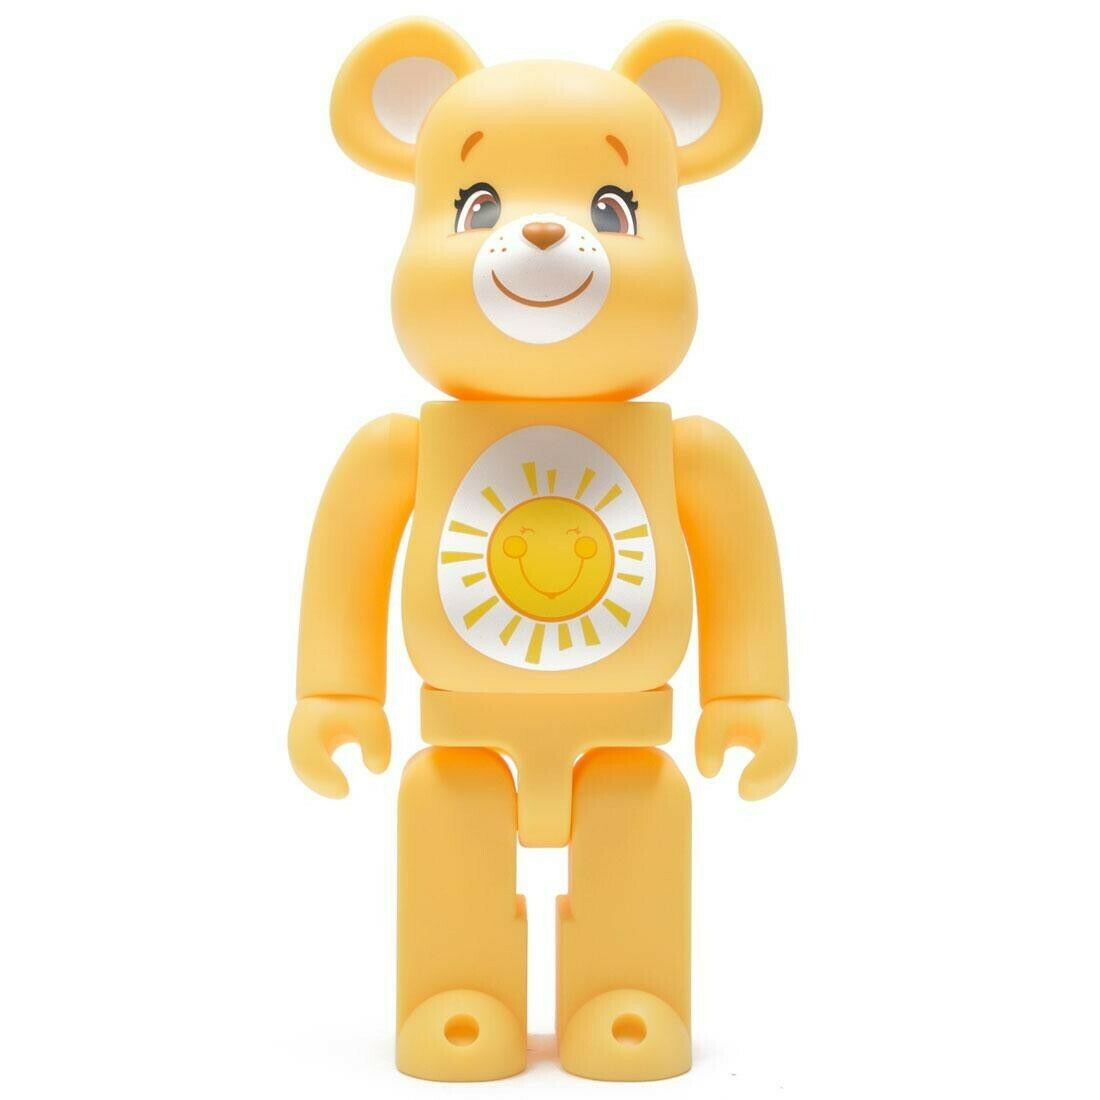 Medicom BE@RBRICK Care Bears Funshine Bear 400% Bearbrick Figure